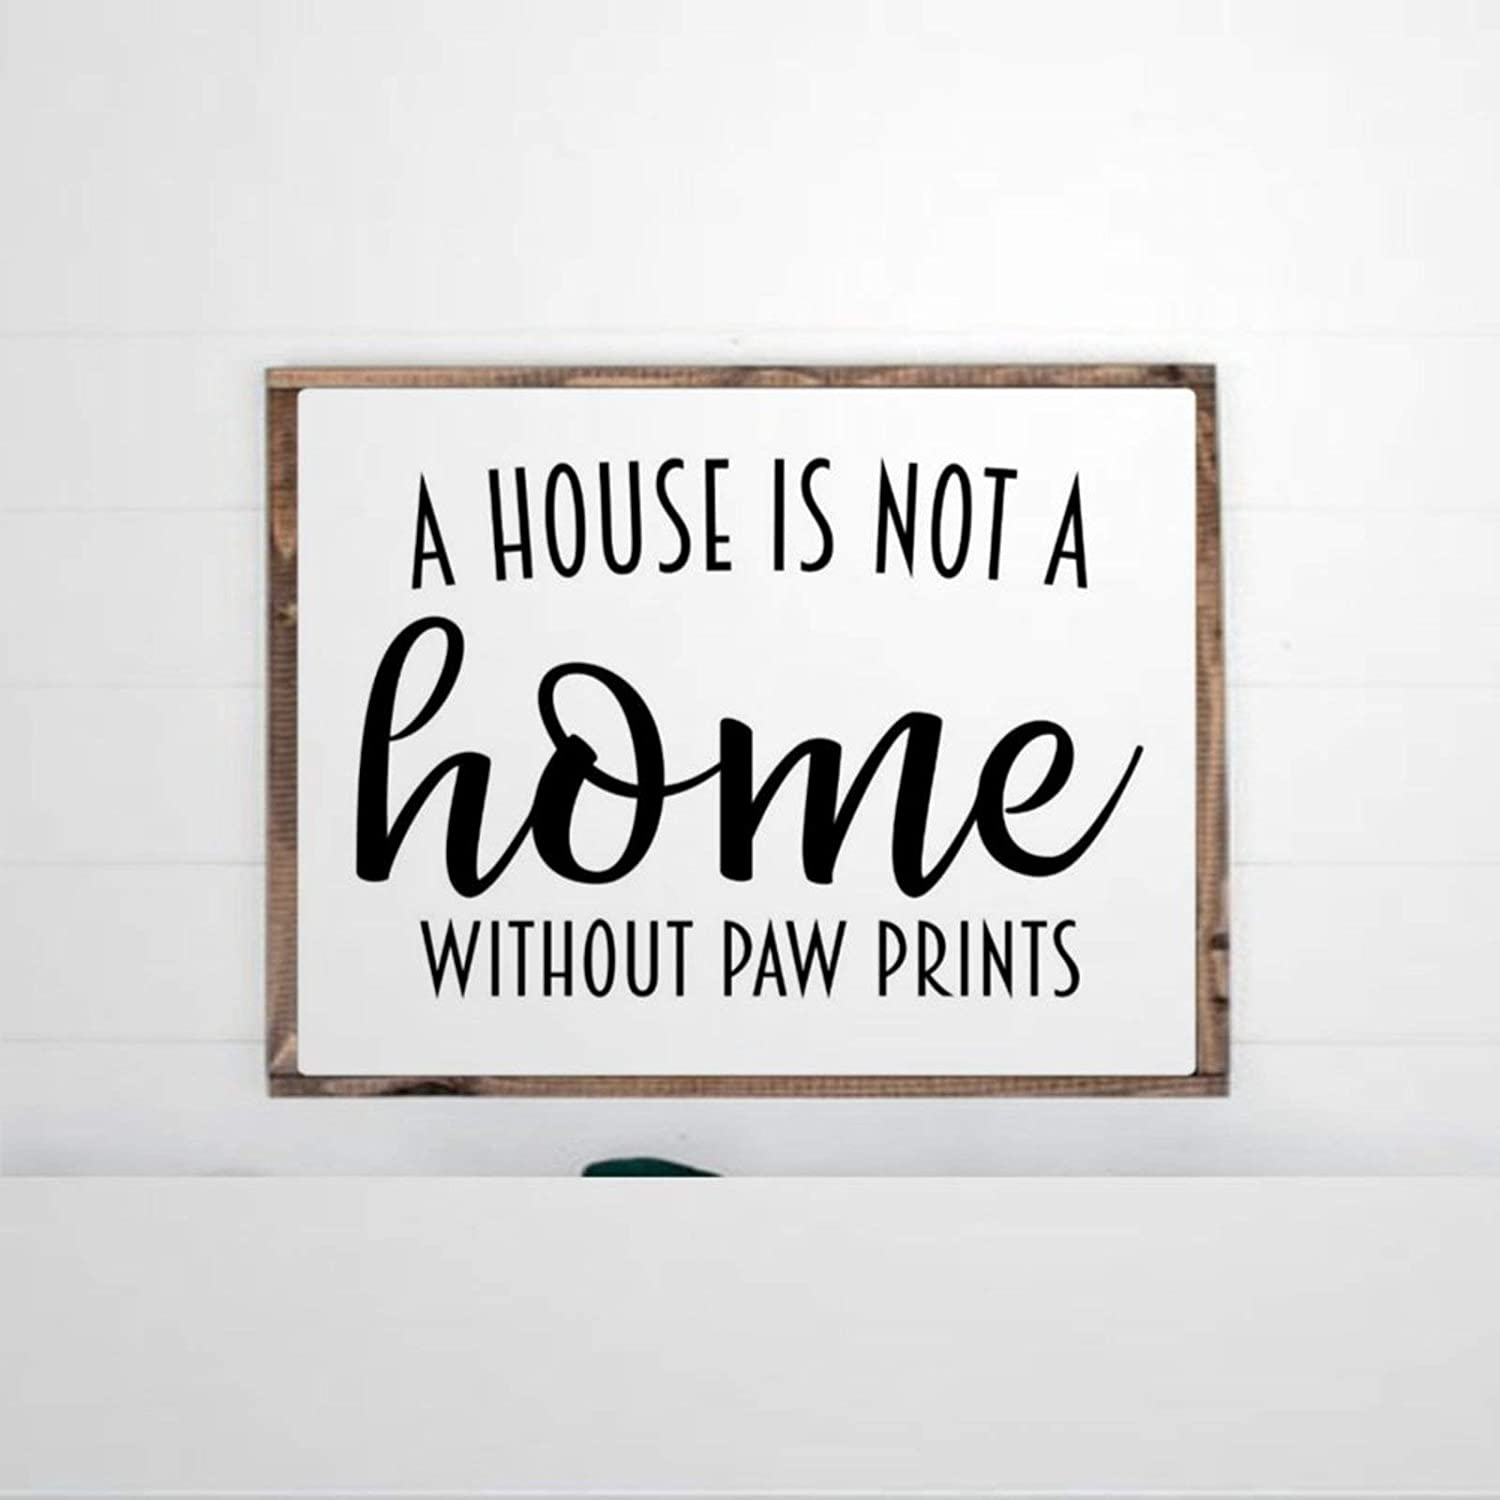 DONL9BAUER A House is Not A Home Without Paw Prints Framed Wooden Sign, Wood Wall Decor Sign, Farmhouse Wooden Plaque Art for Home,Gardens, Porch, Gallery Wall, Coffee Shops.